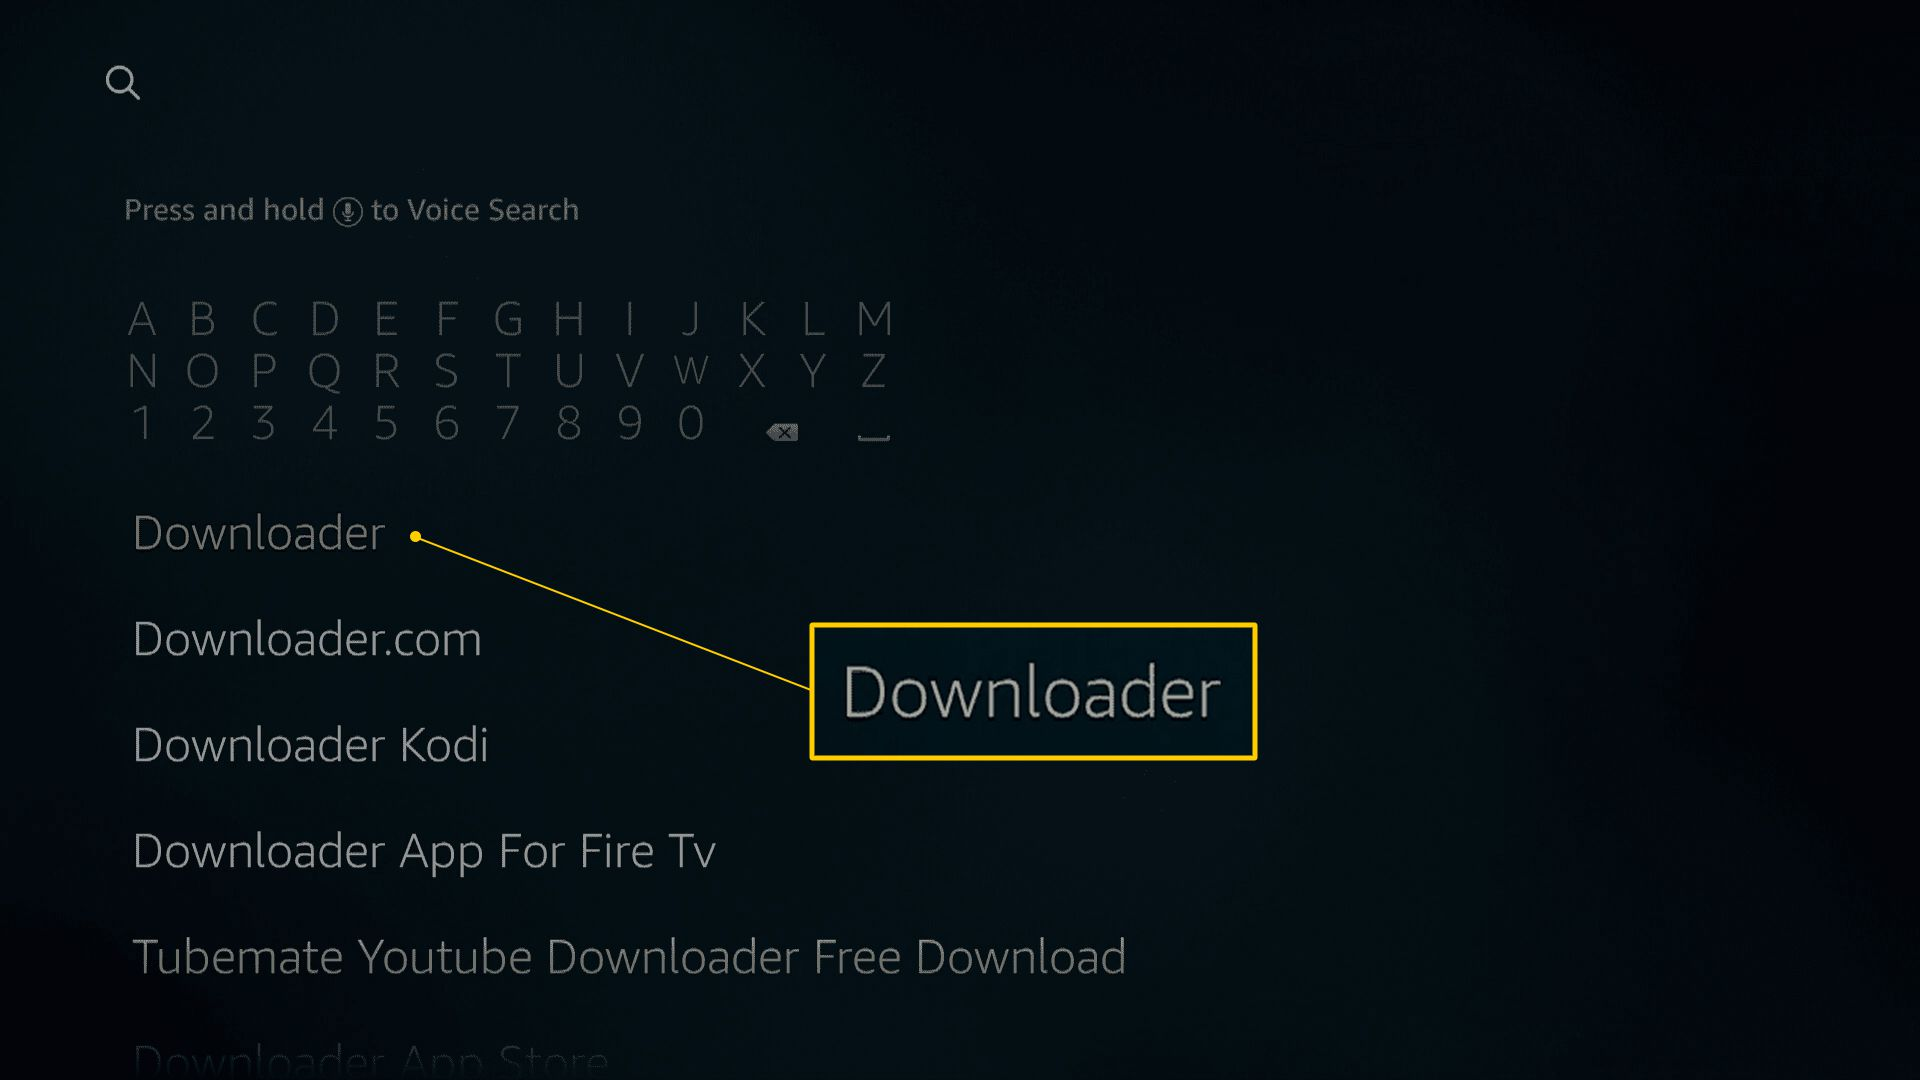 Downloader search on Fire TV Search page